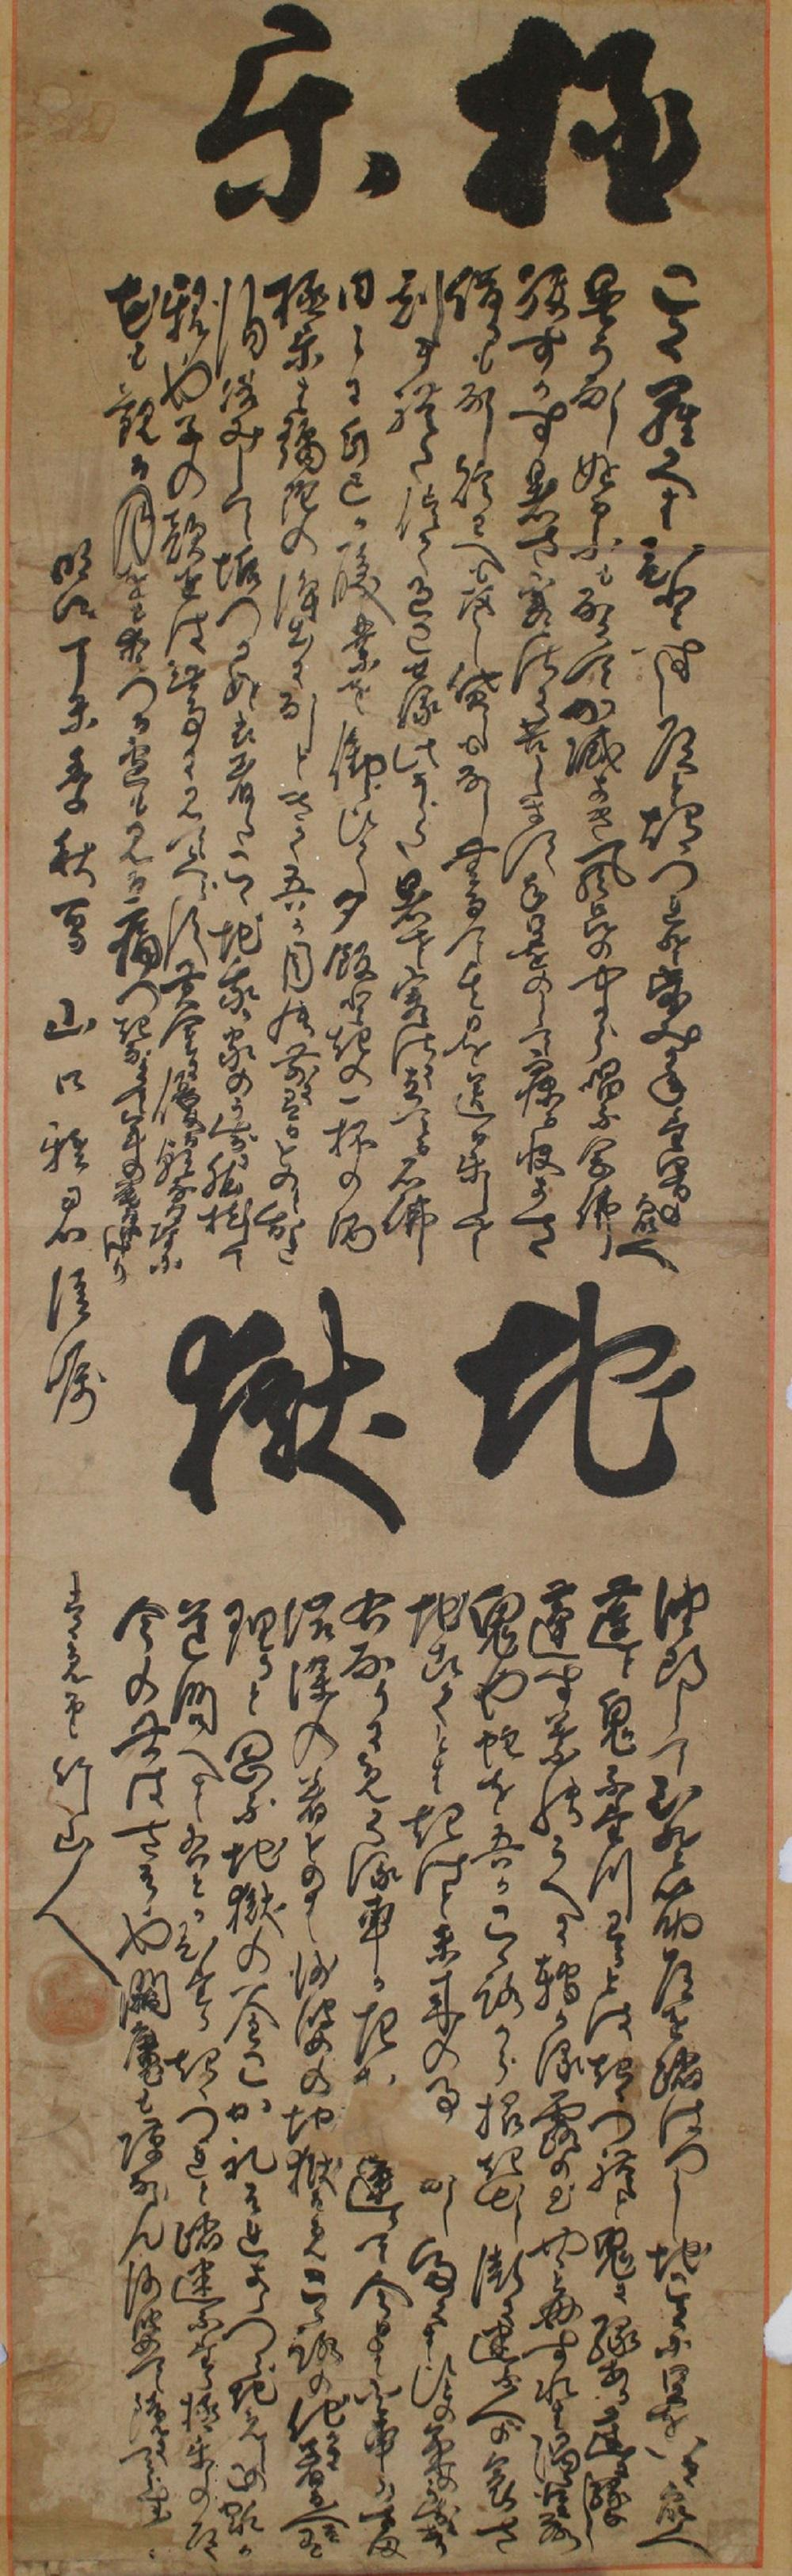 Korean Ink Calligraphy on Paper Scroll.